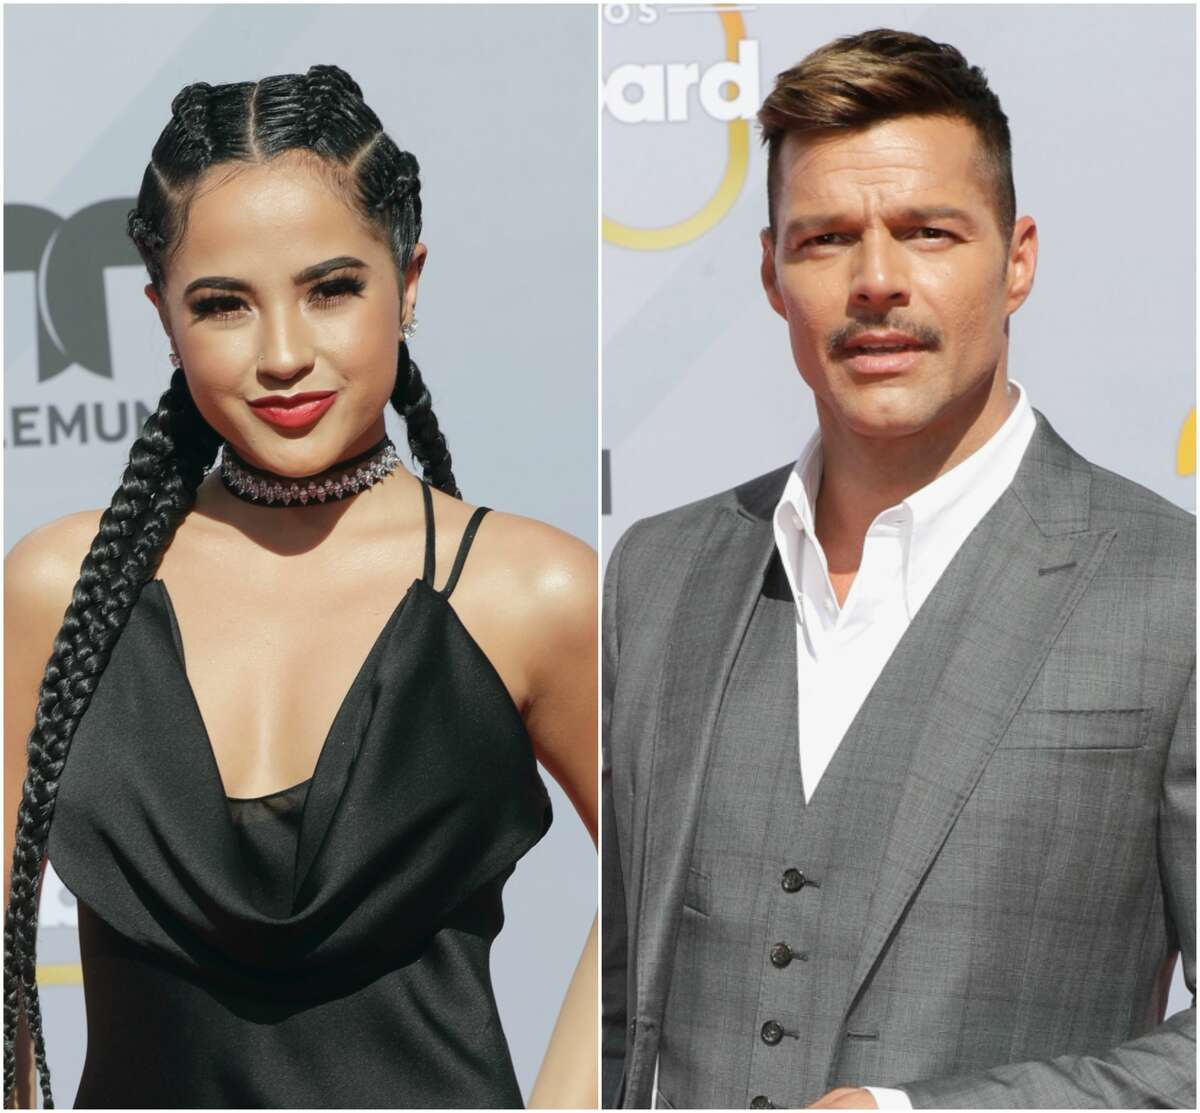 >>Keep clicking to see which celebrities were named best and worst dressed at the Billboard Latin Music Awards.